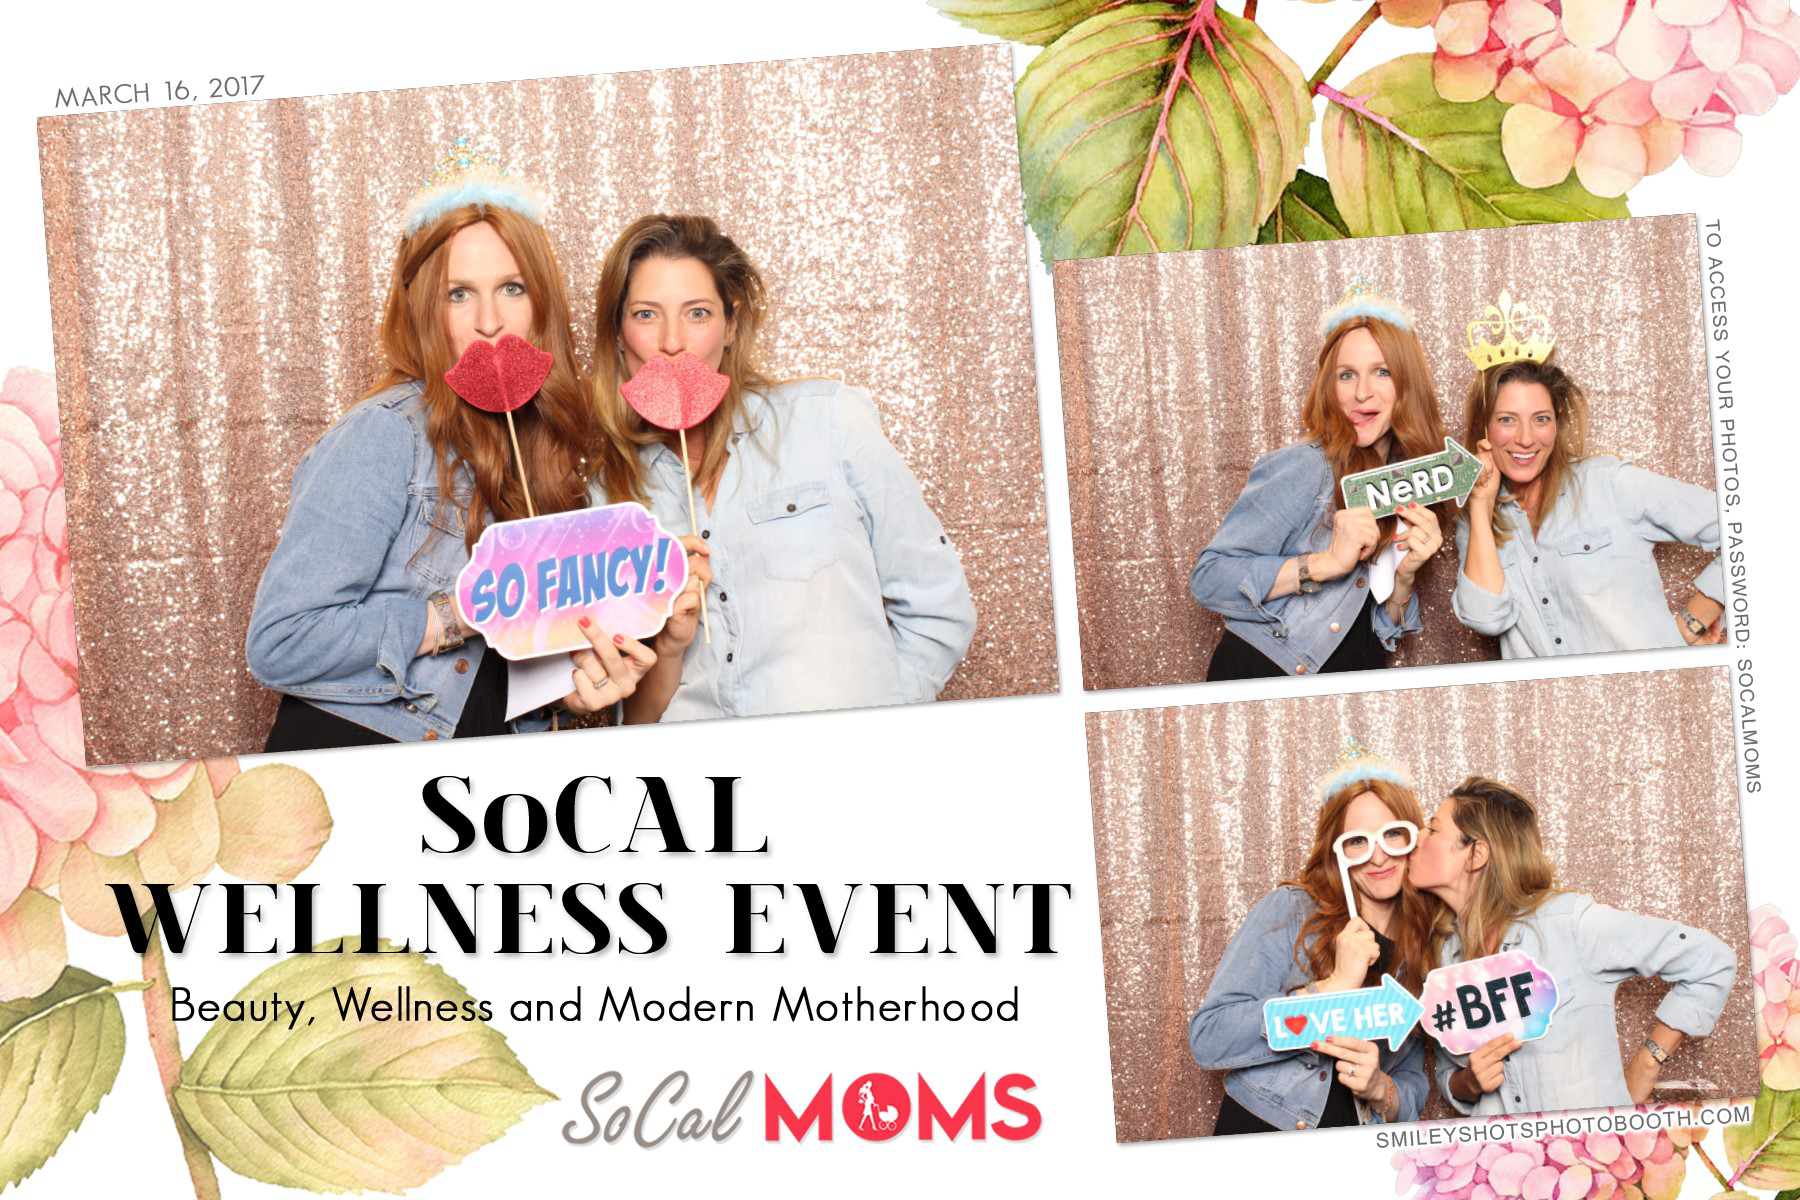 Socal Wellness Event Socal Moms Smiley Shots Photo Booth Photobooth (52).png